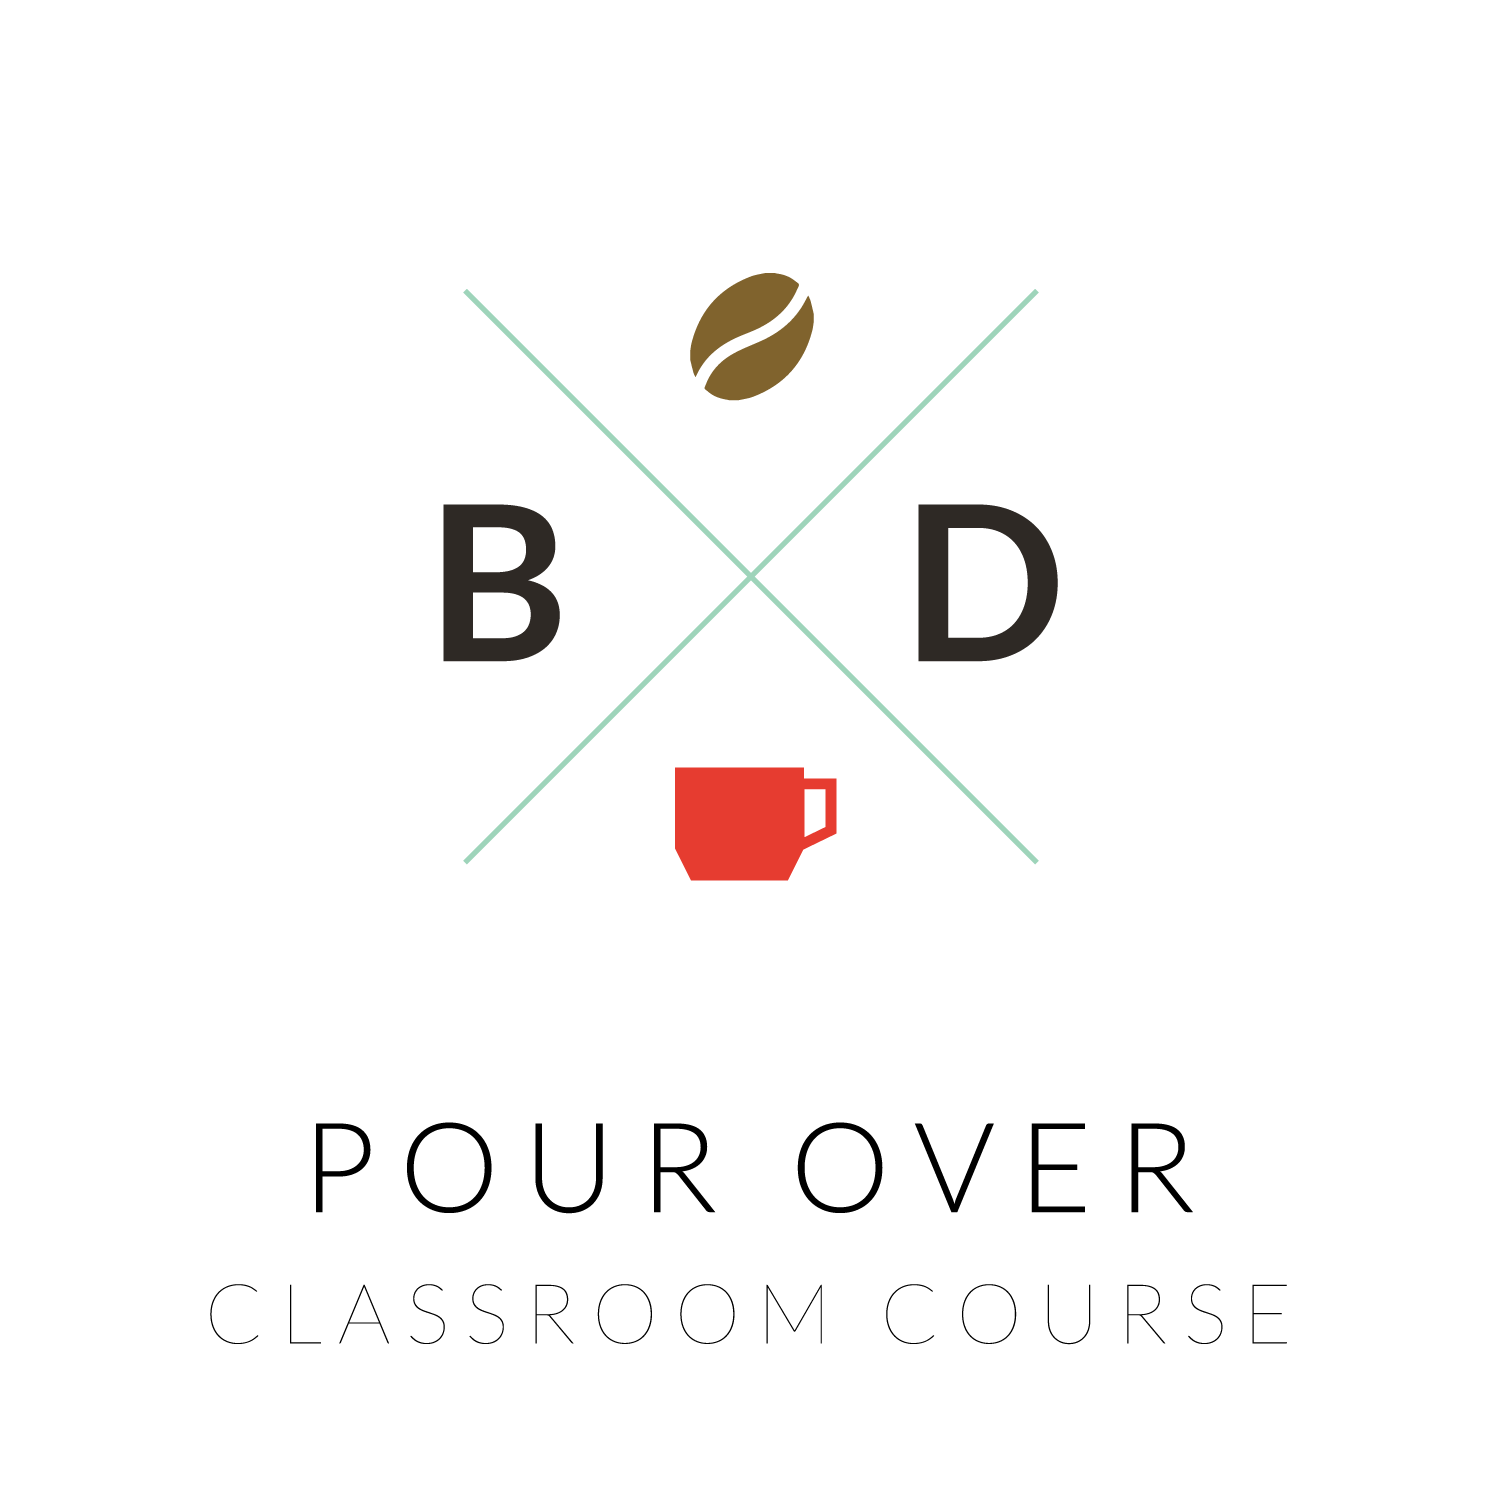 POUROVER-01.png